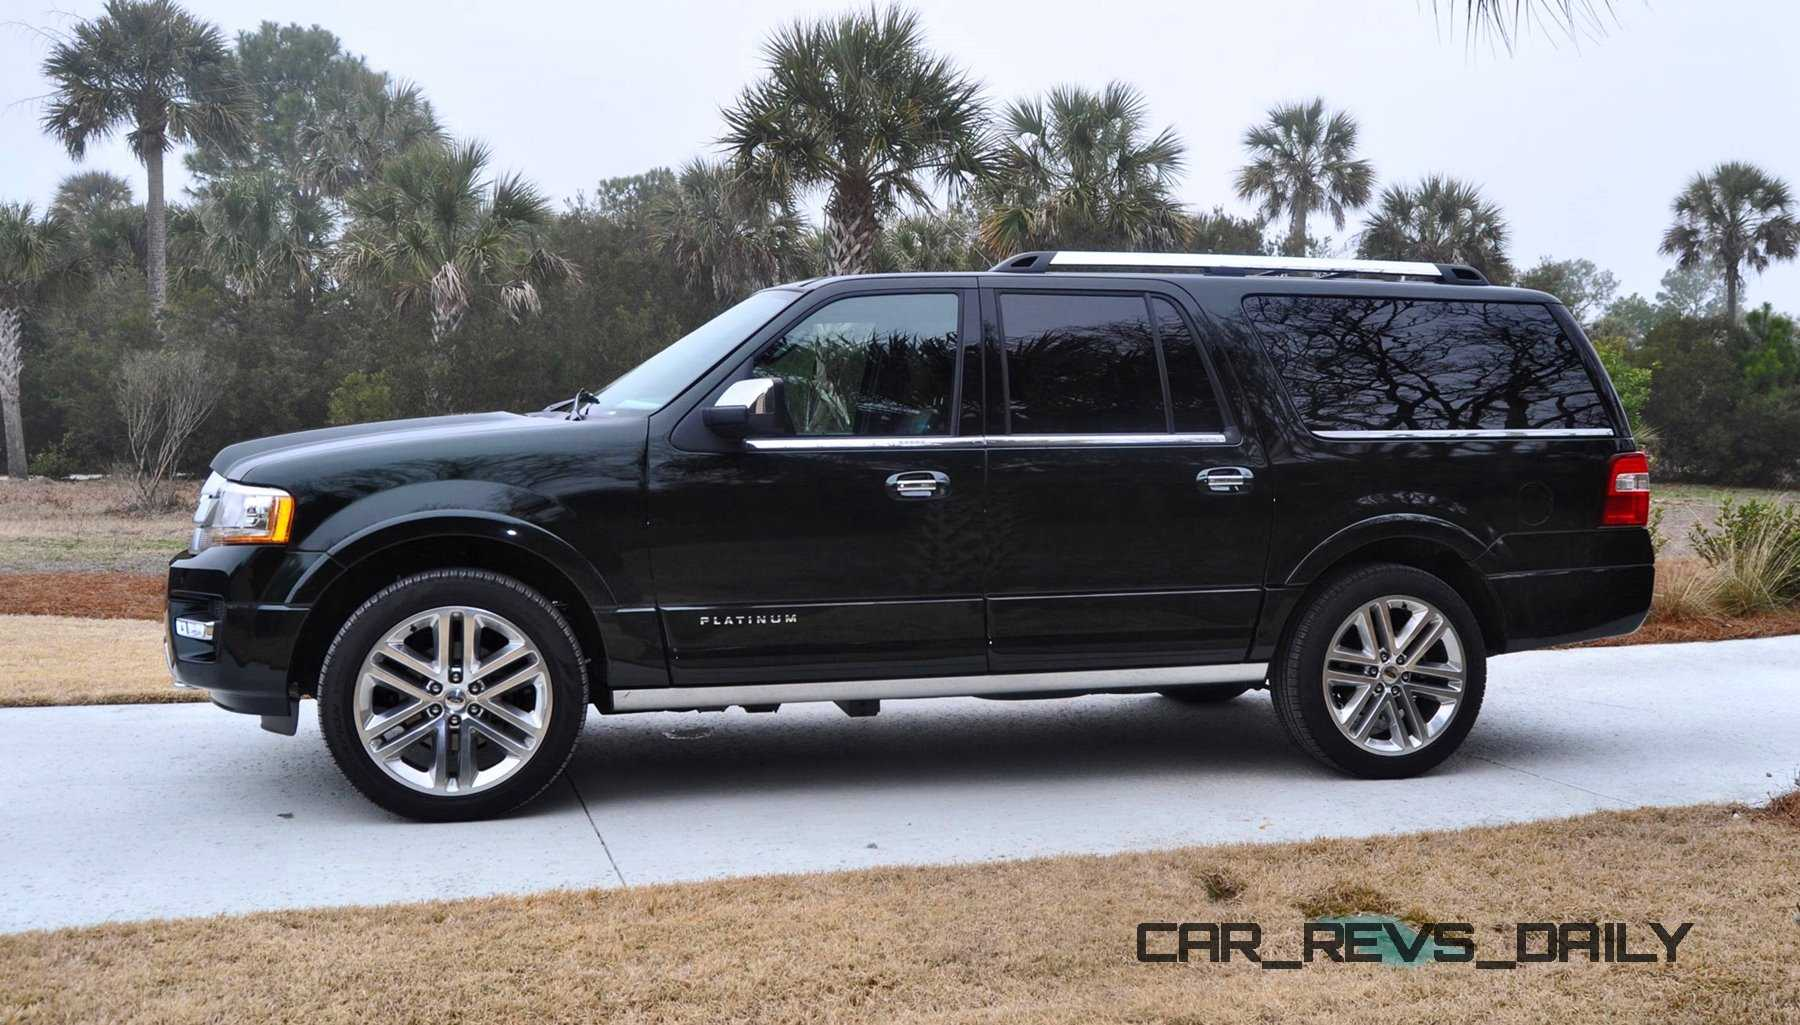 2018 Ford Expedition Review >> 2015 Ford Expedition Platinum EL 39